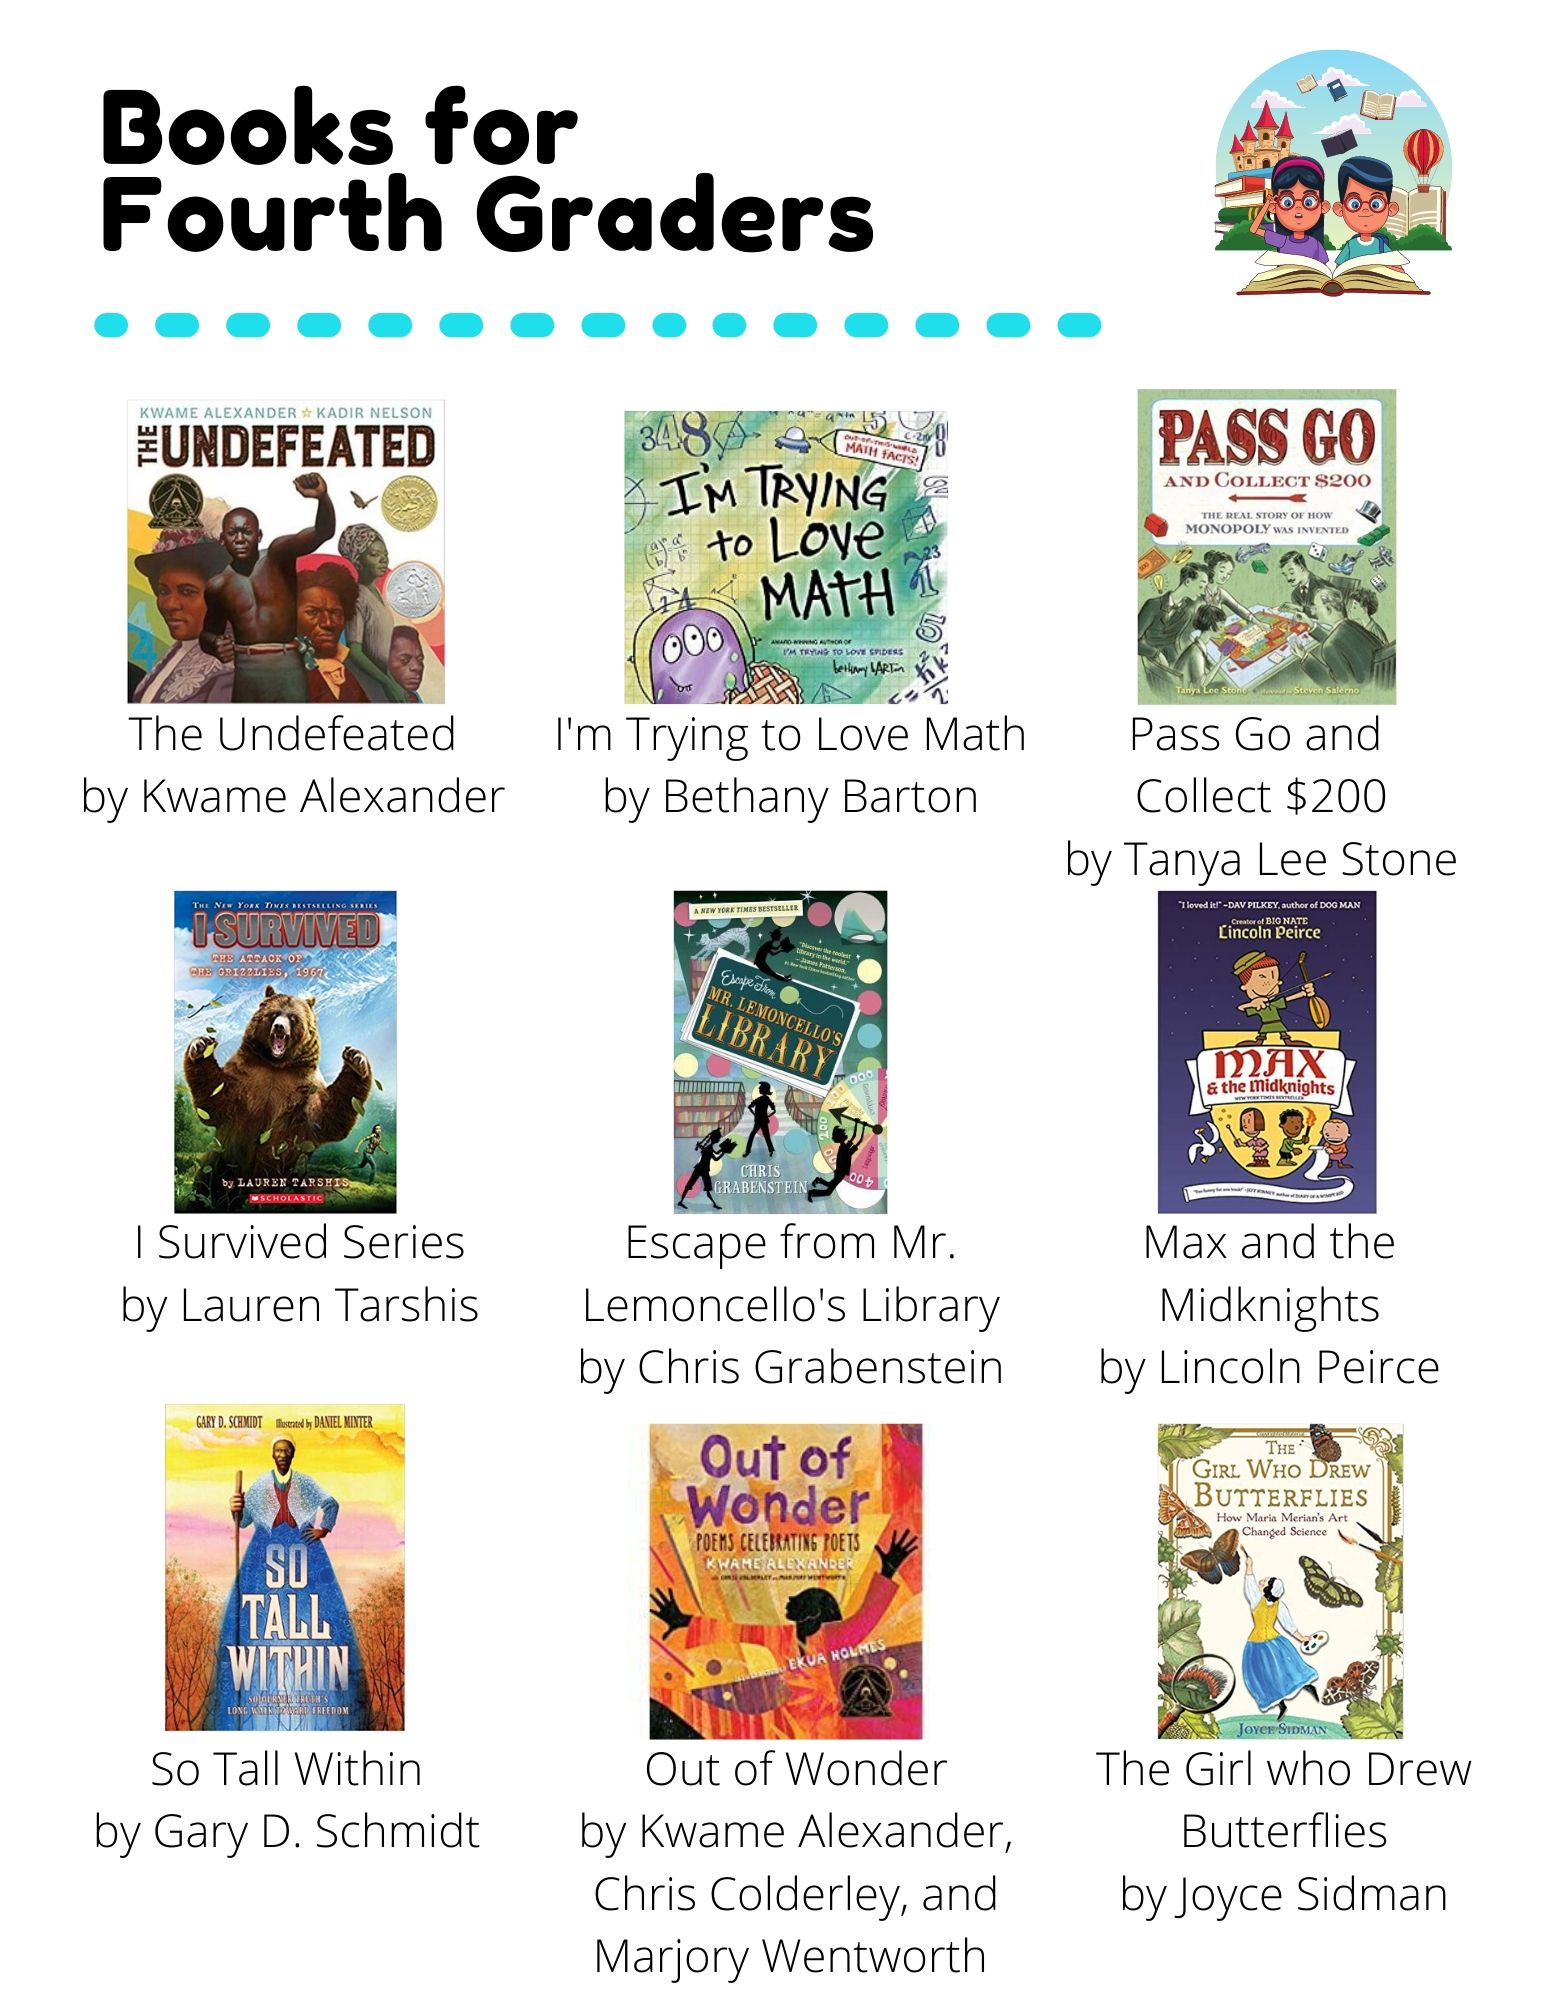 Books for Fourth Graders: The Undefeated by Kwame Alexander. I'm Trying to Love Math by Bethany Barton. Pass Go and  Collect $200 by Tanya Lee Stone. I Survived Series by Lauren Tarshis. Escape from Mr. Lemoncello's Library by Chris Grabenstein. Max and the Midknights by Lincoln Peirce. So Tall Within by Gary D. Schmidt. Out of Wonder by Kwame Alexander, Chris Colderley, and Marjory Wentworth. The Girl who Drew Butterflies by Joyce Sidman. Marley Dias Gets it Done by Marley Dias. The Cardboard Kingdom by Chad Sell. Pie in the Sky by Remy Lai. Front Desk by Kelly Yang. The Wishing Spell by Chris Colfer. Rump by Liesl Shurtliff. Because of the Rabbit by Cynthia Lord. Sweep by Jonathan Auxier. A Wolf Called Wonder by Rosanne Parry. Grand Canyon by Jason Chin. Hello, Universe by Erin Entrada Kelly. The Tale of Despereaux by Kate DiCamillo.